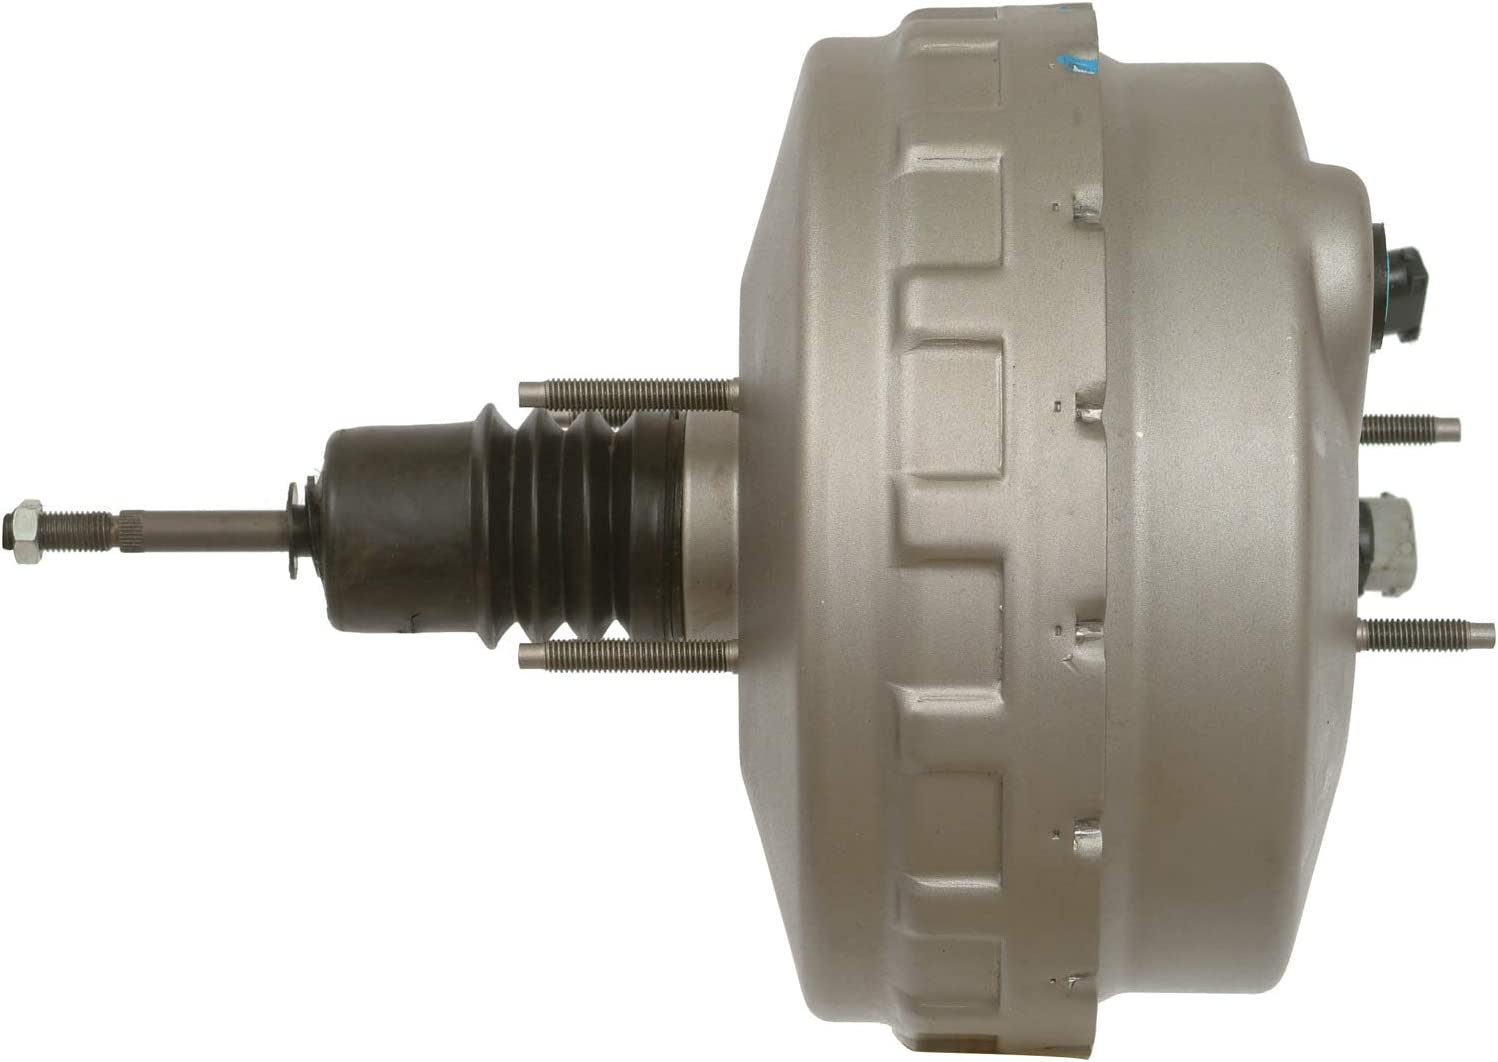 Cardone 53-3118 Remanufactured Vacuum withou Power Brake OFFicial shop Booster El Paso Mall